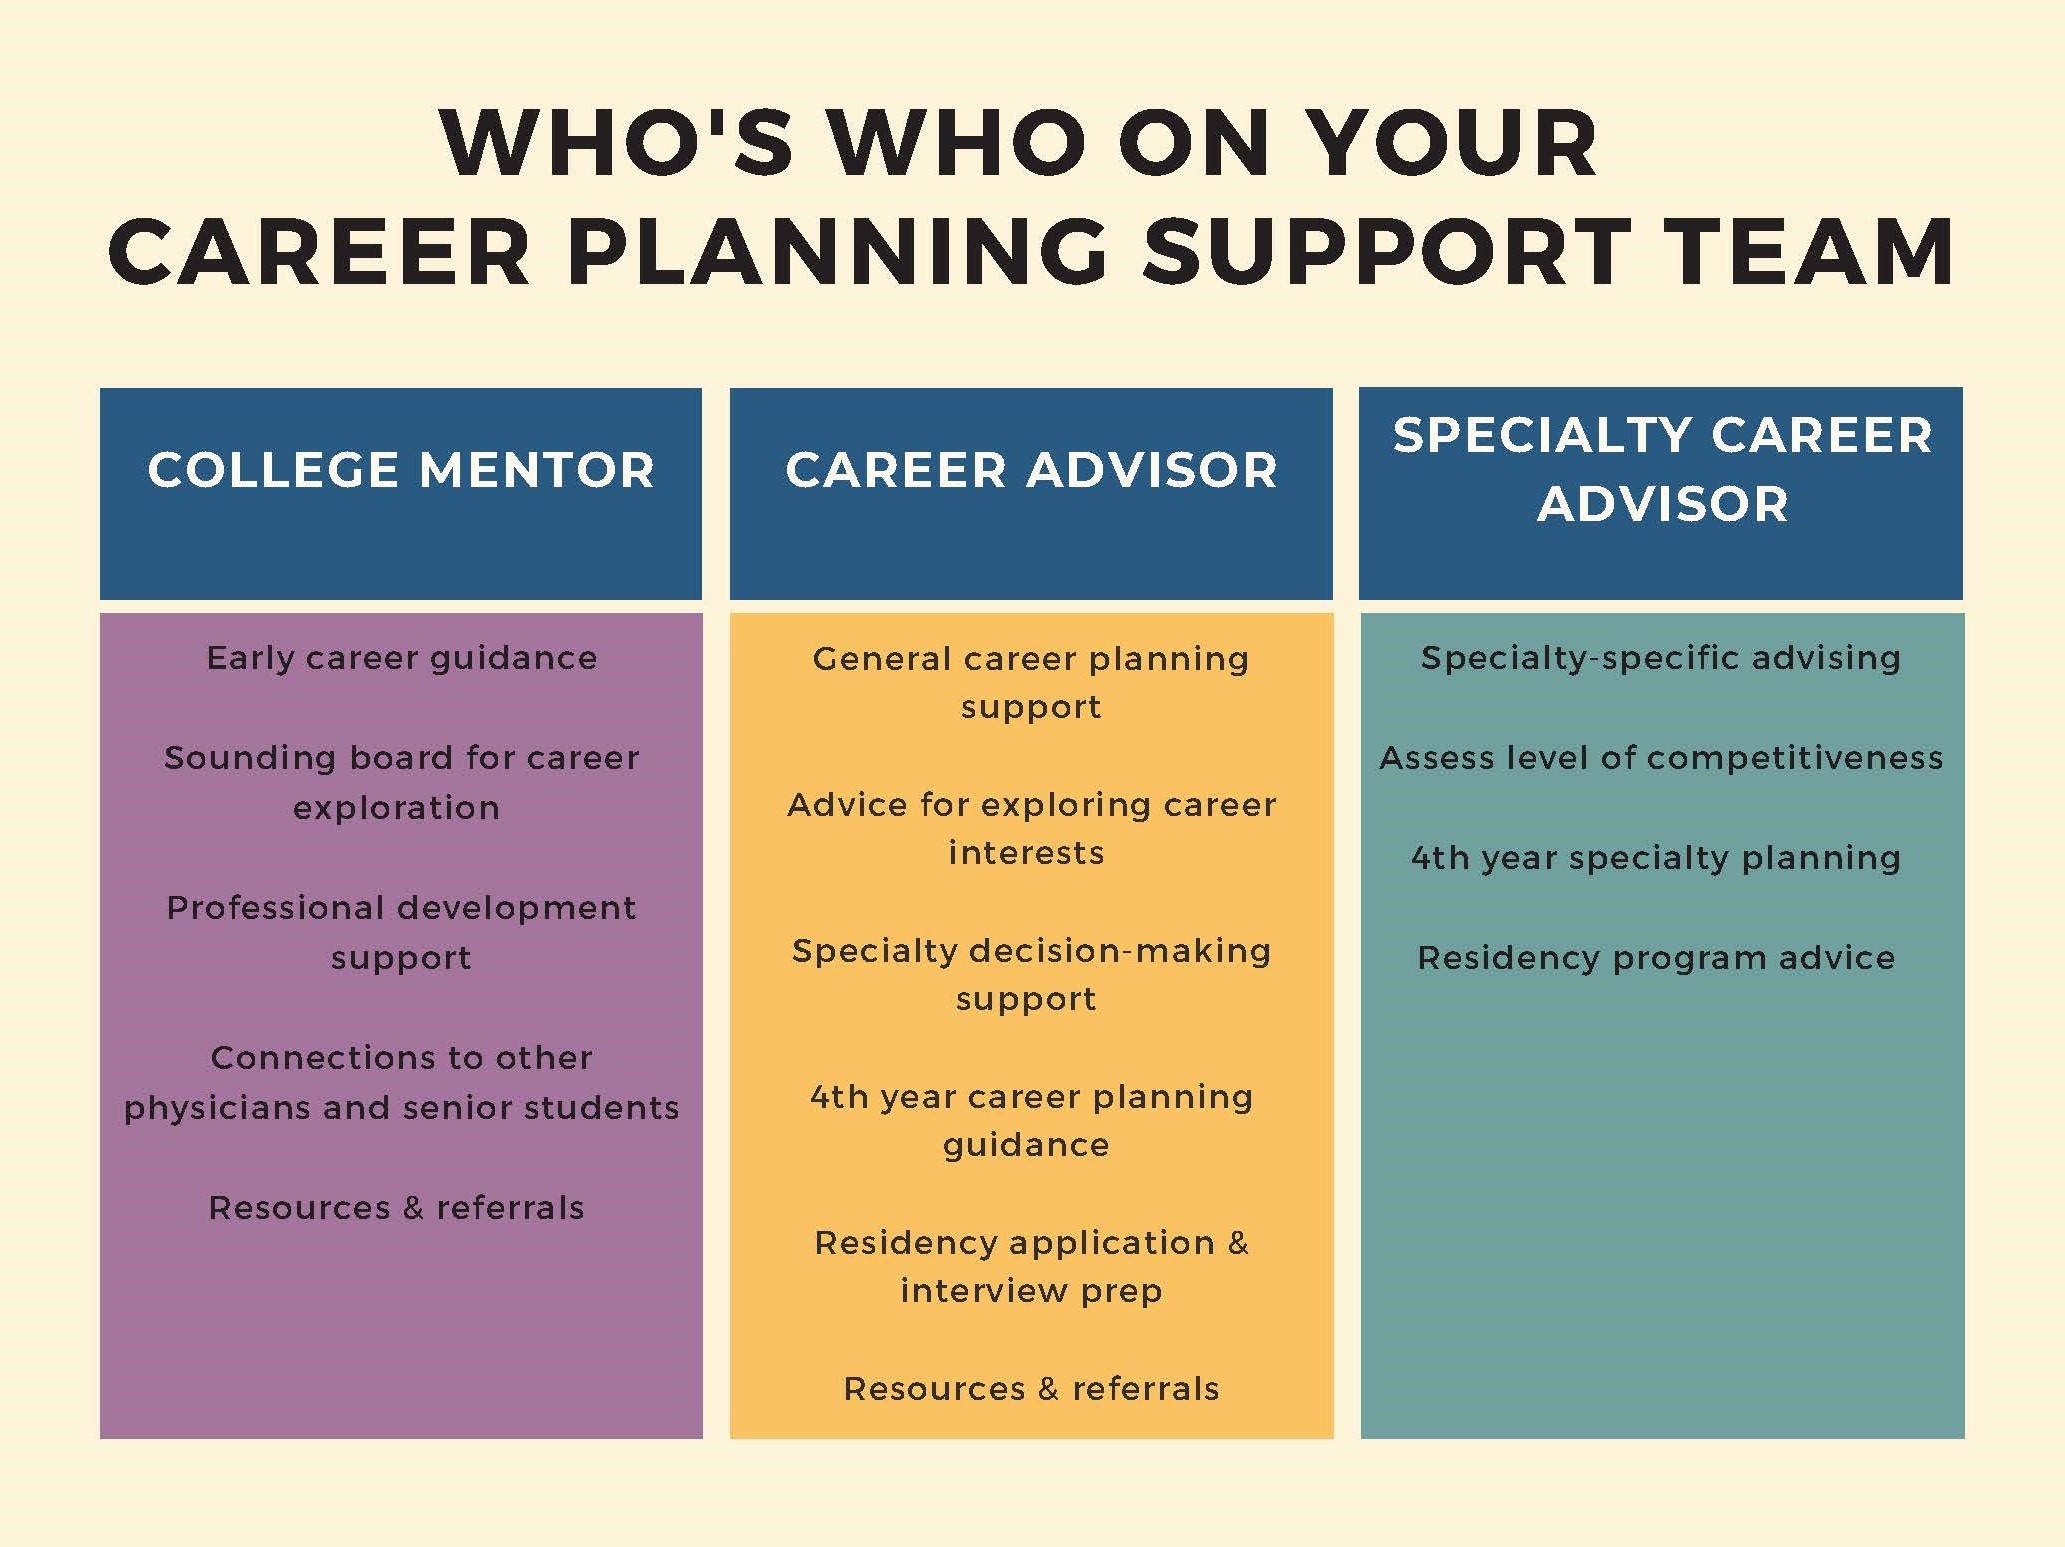 Chart explaining the roles of the three types of career planning supports